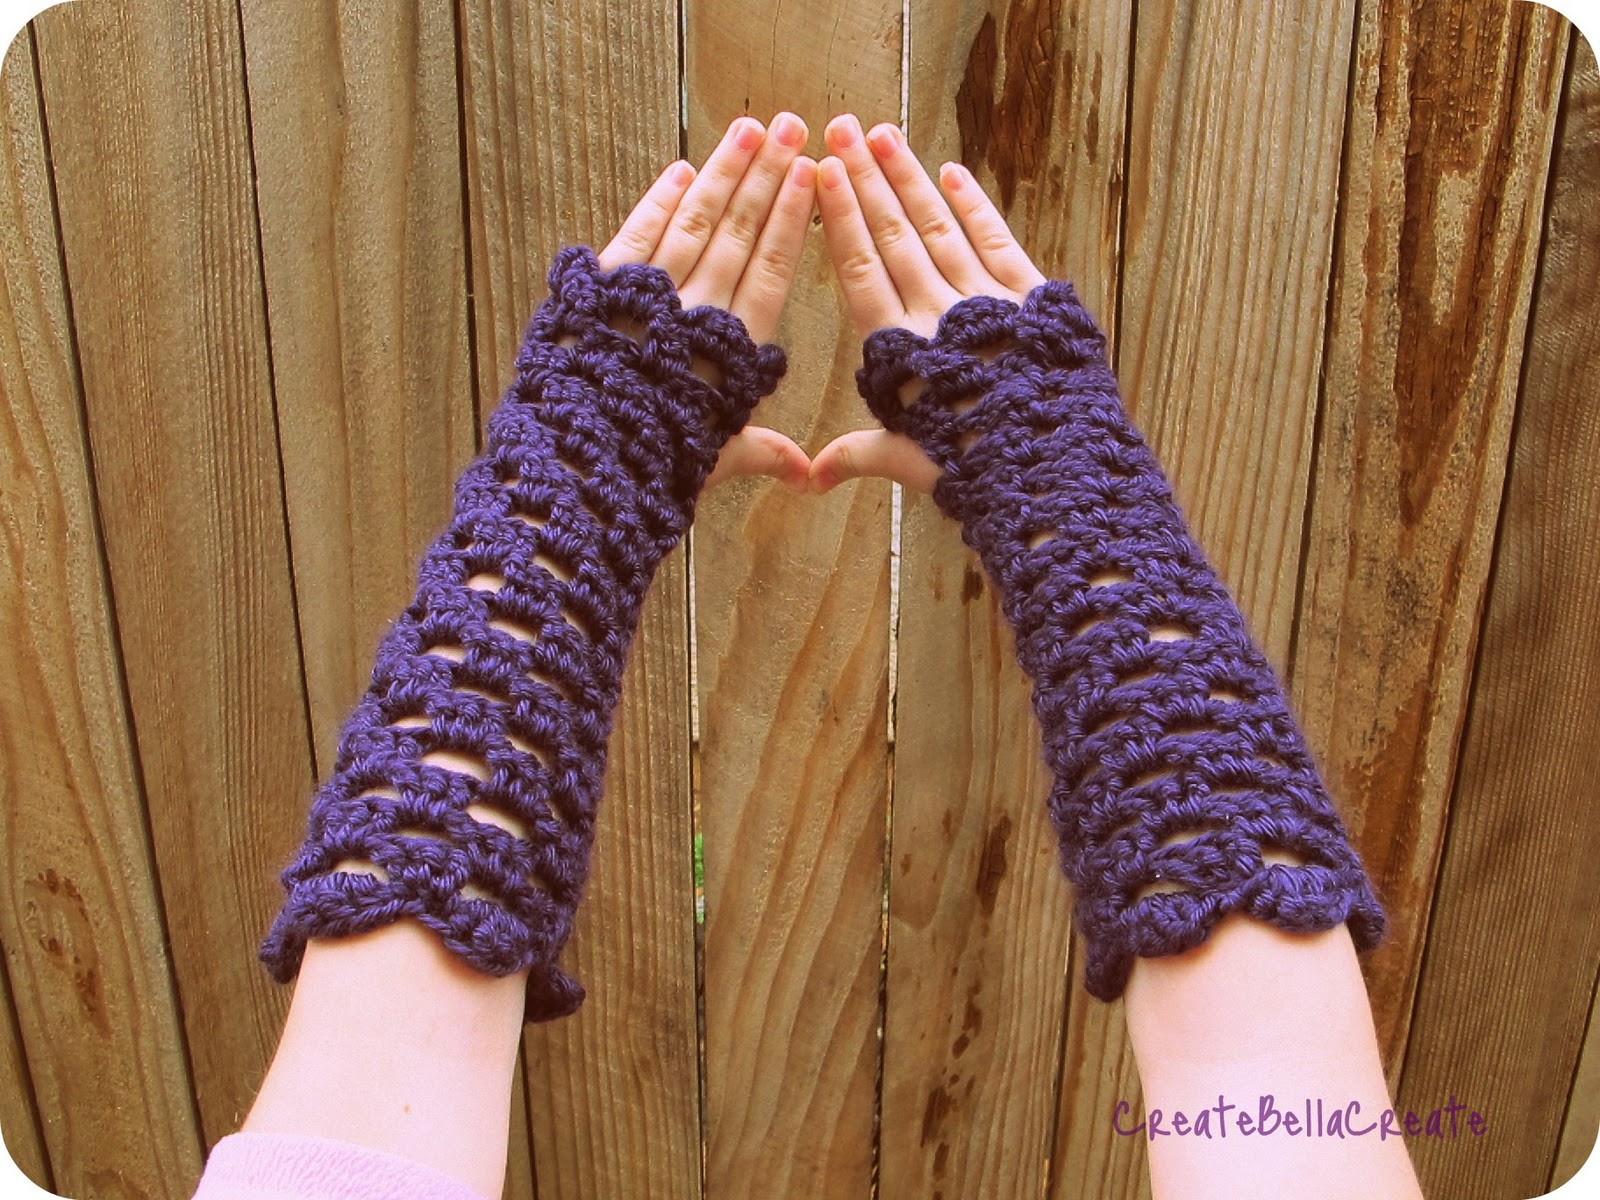 createbellacreate: Kids Version of the Crochet Openwork Fingerless ...